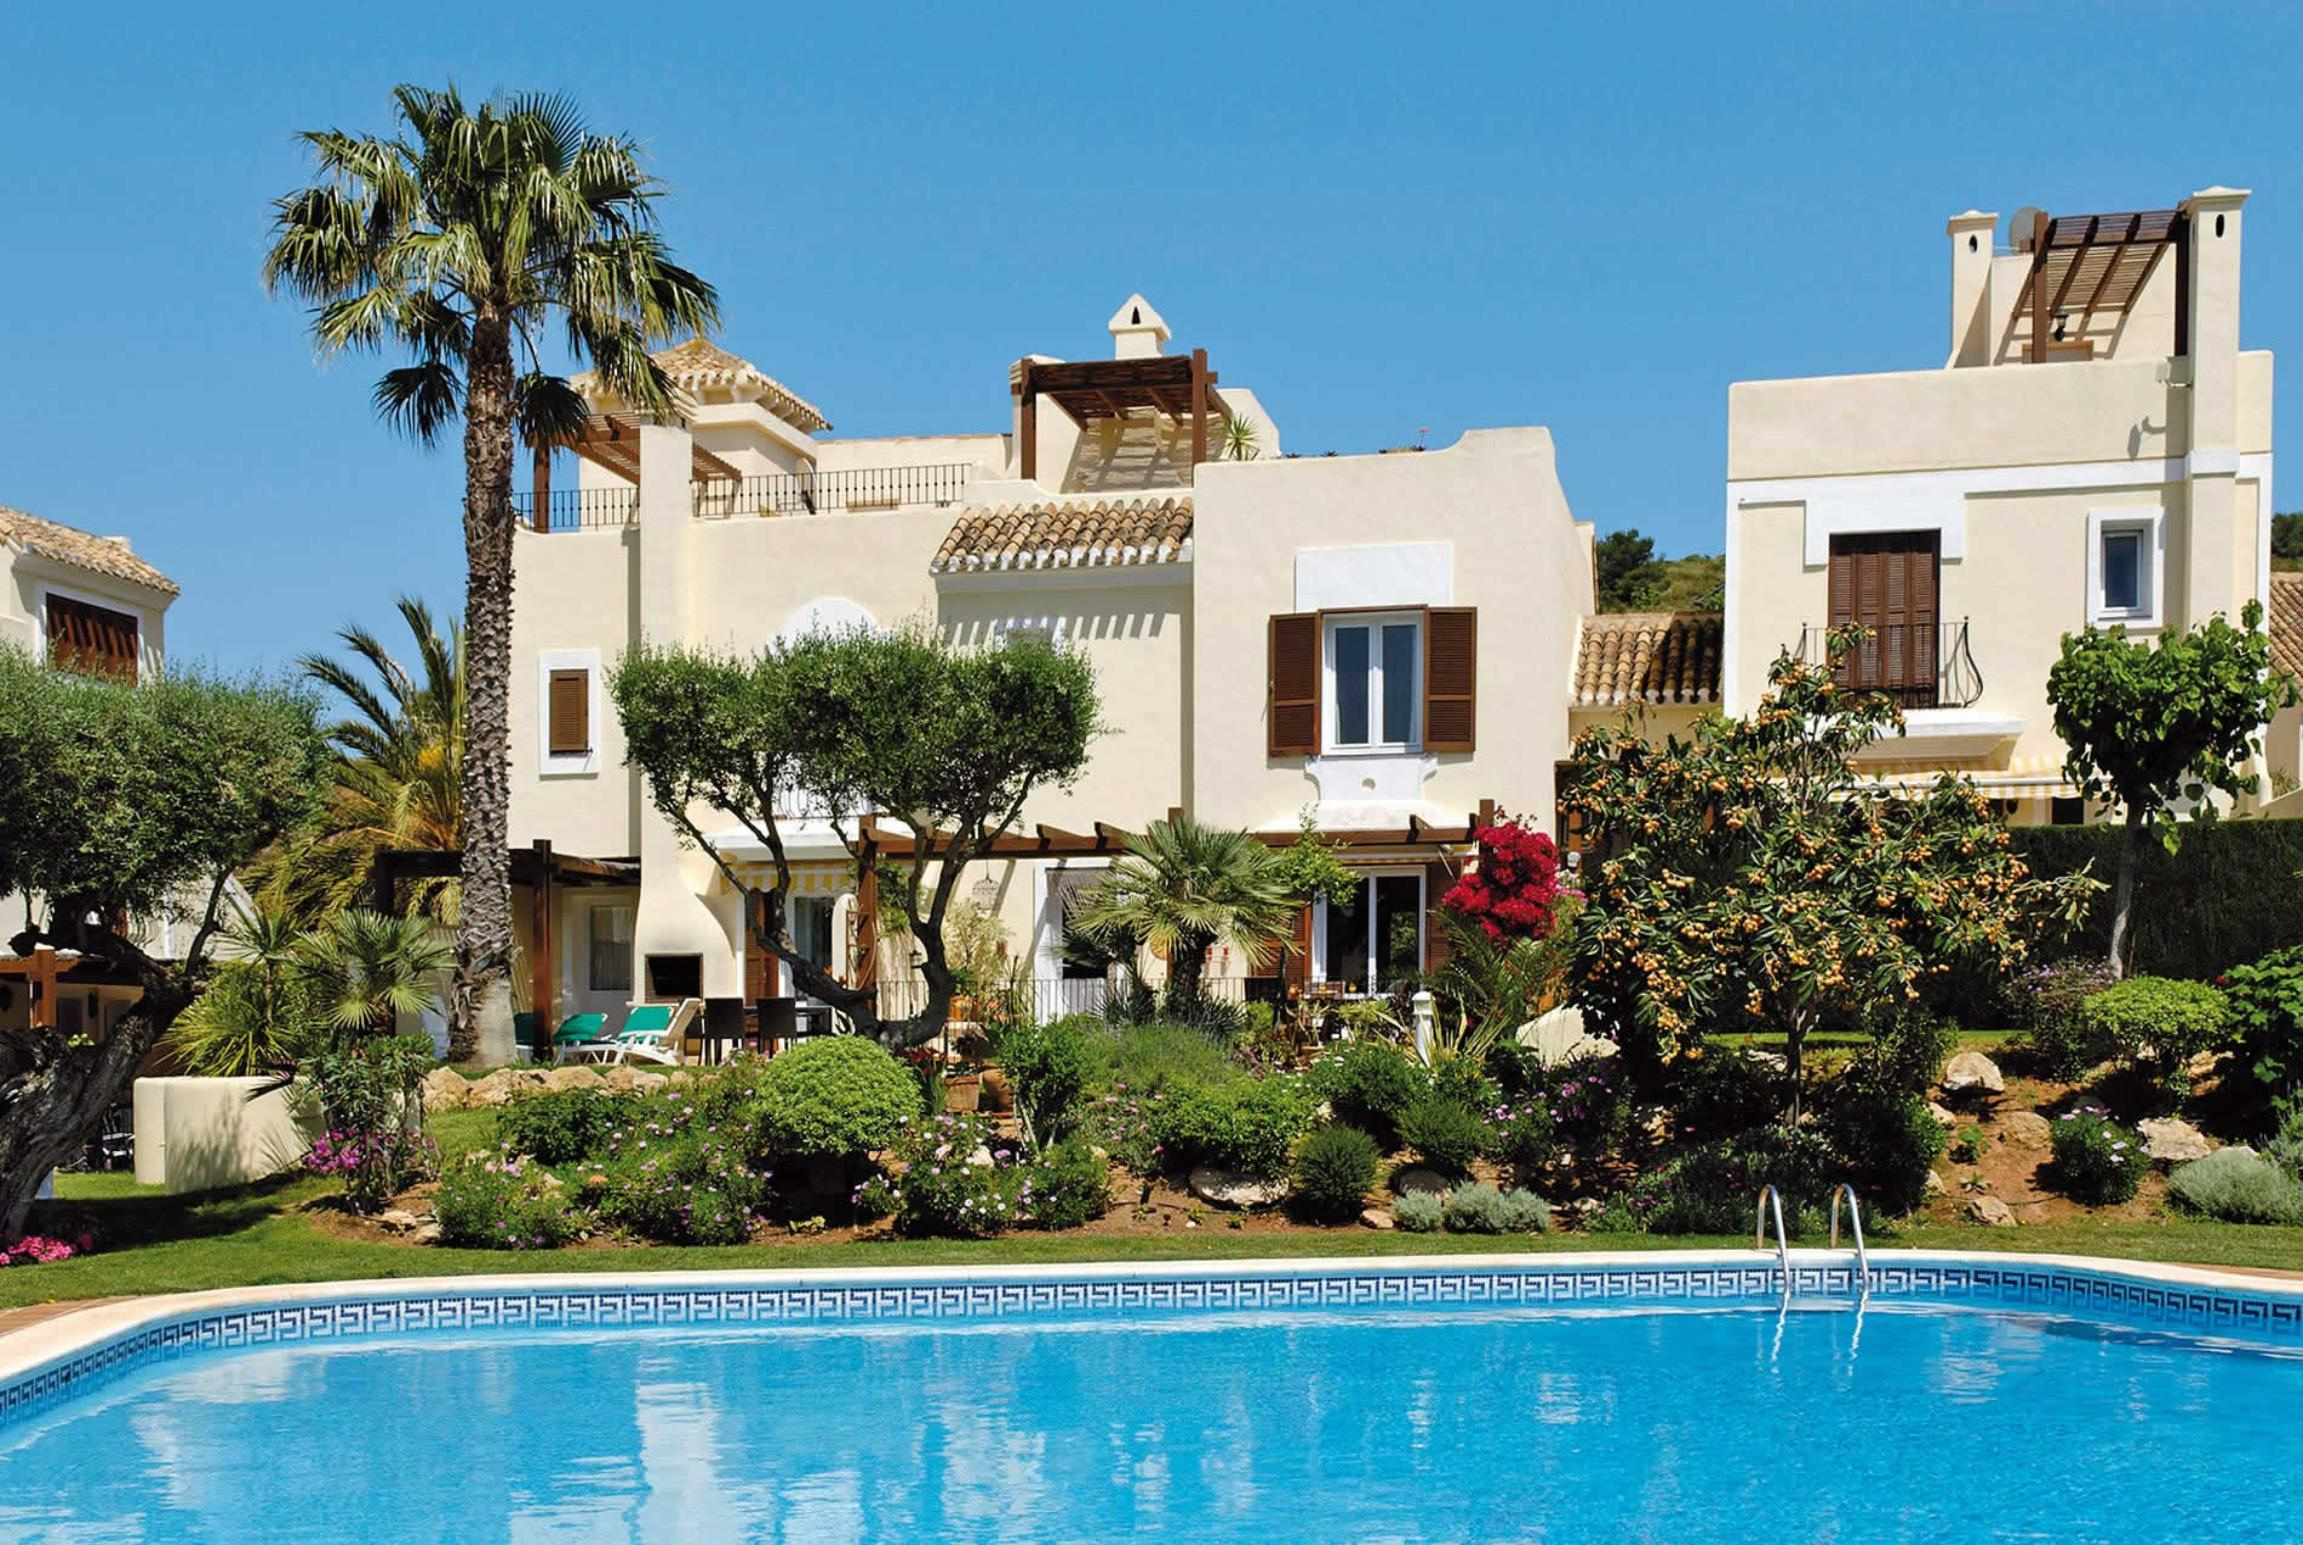 Read more about Las Brisas de Mar villa